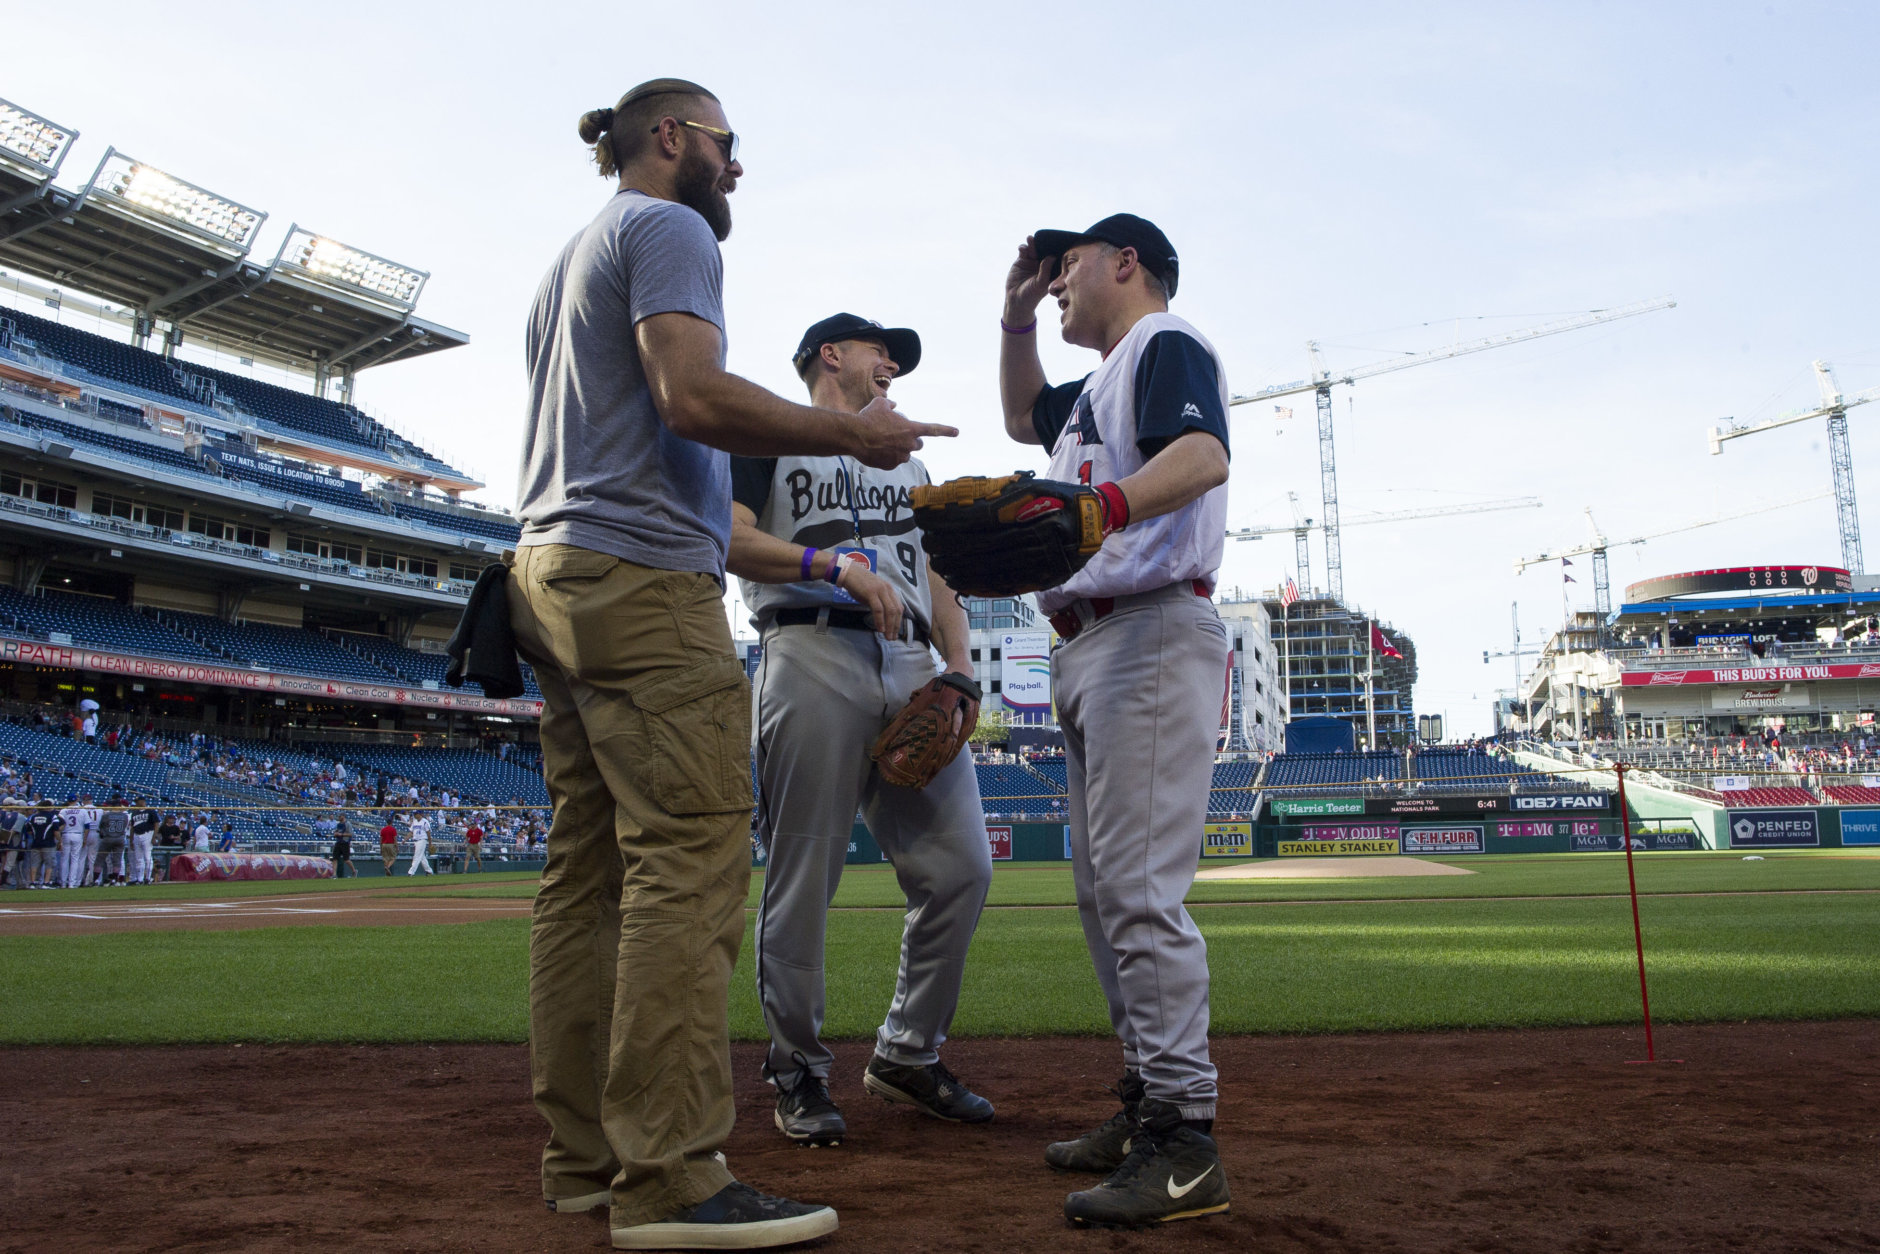 U.S. Rep. Steve Scalise, R-Louisiana, right, talks with Washington Nationals outfielder Jayson Werth, left, before the start of the 57th Congressional Baseball Game at National's Park in Washington, Thursday, June 14, 2018. On June 14, 2017, Congressional members were victims of a shooting at the baseball field they were practicing on in Alexandria, Va. (AP Photo/Cliff Owen)